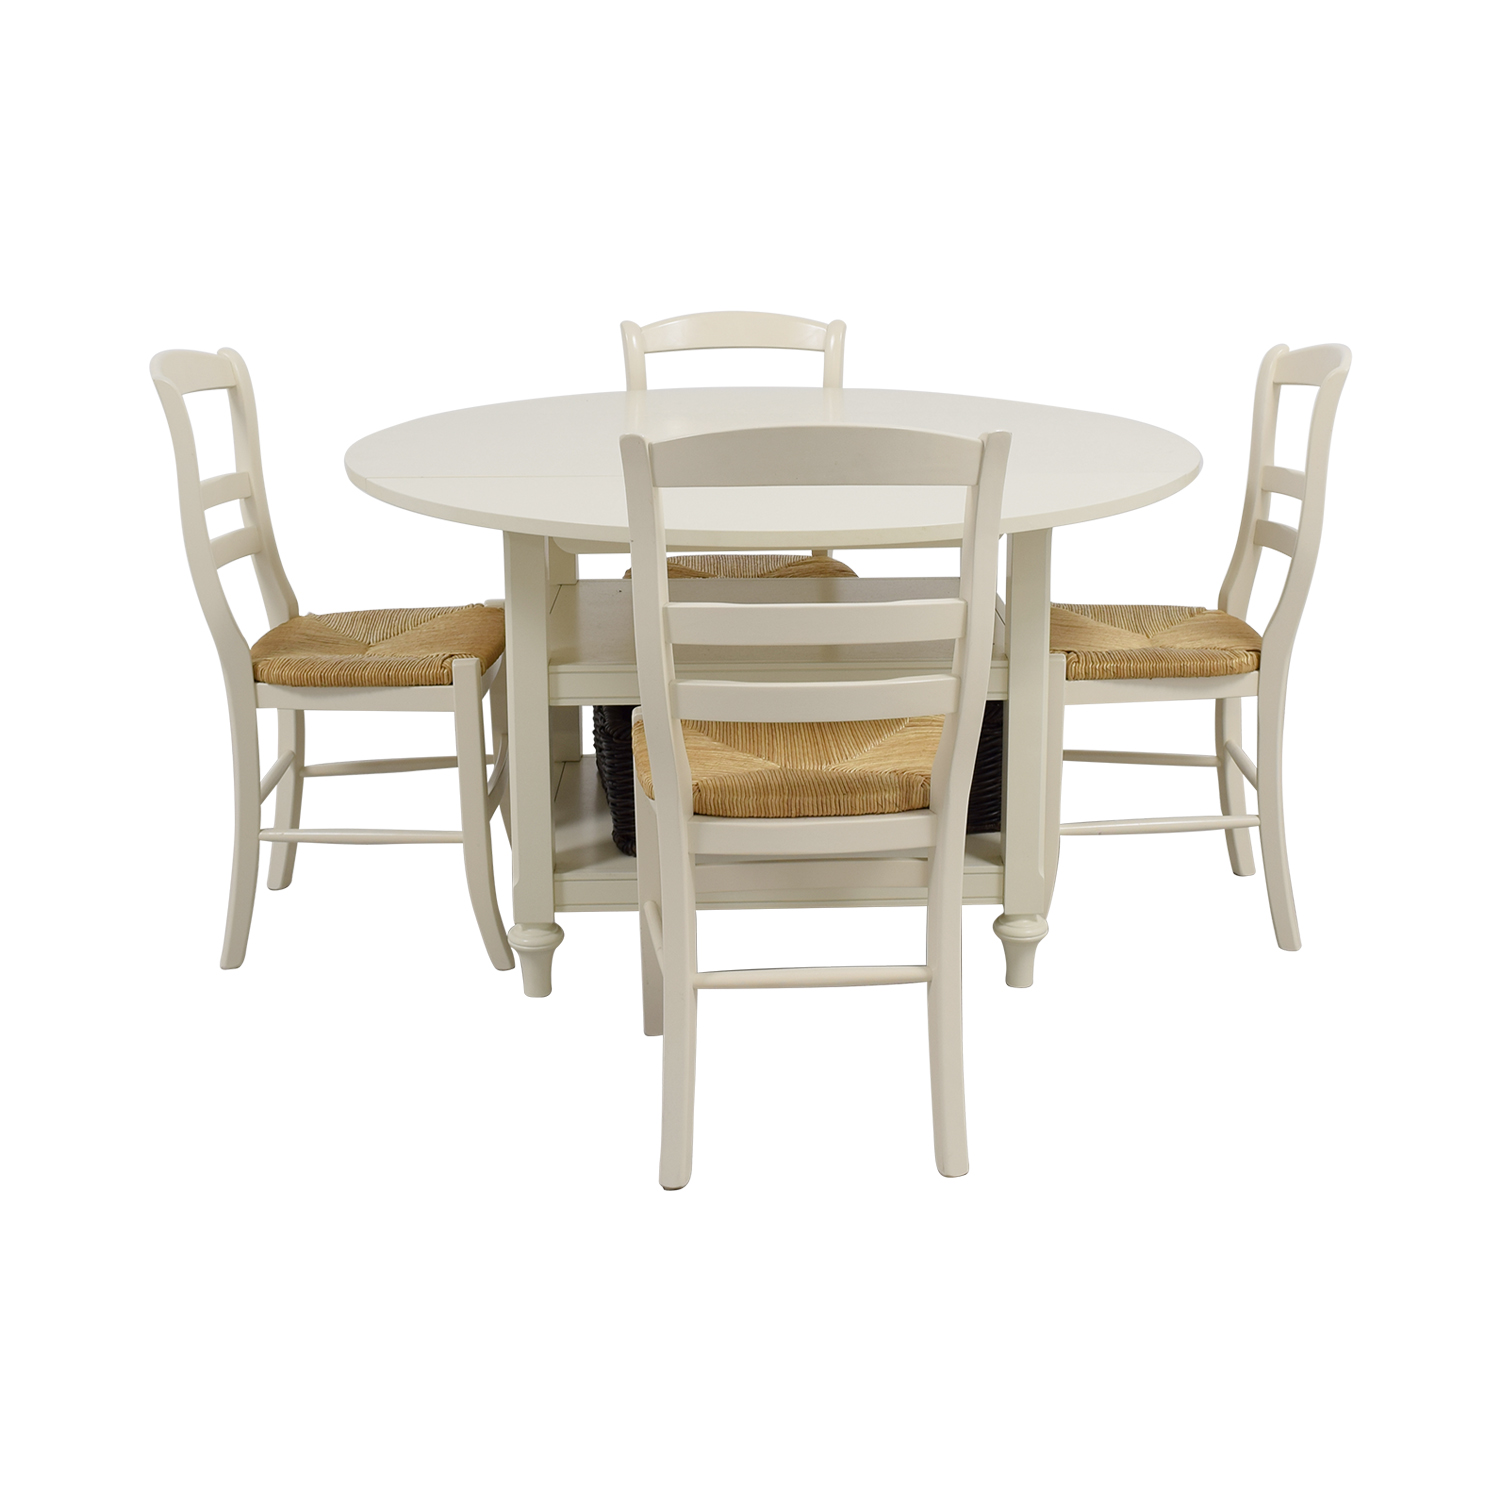 Pottery Barn Pottery Barn Shayna Drop Leaf Table with Chairs Cream